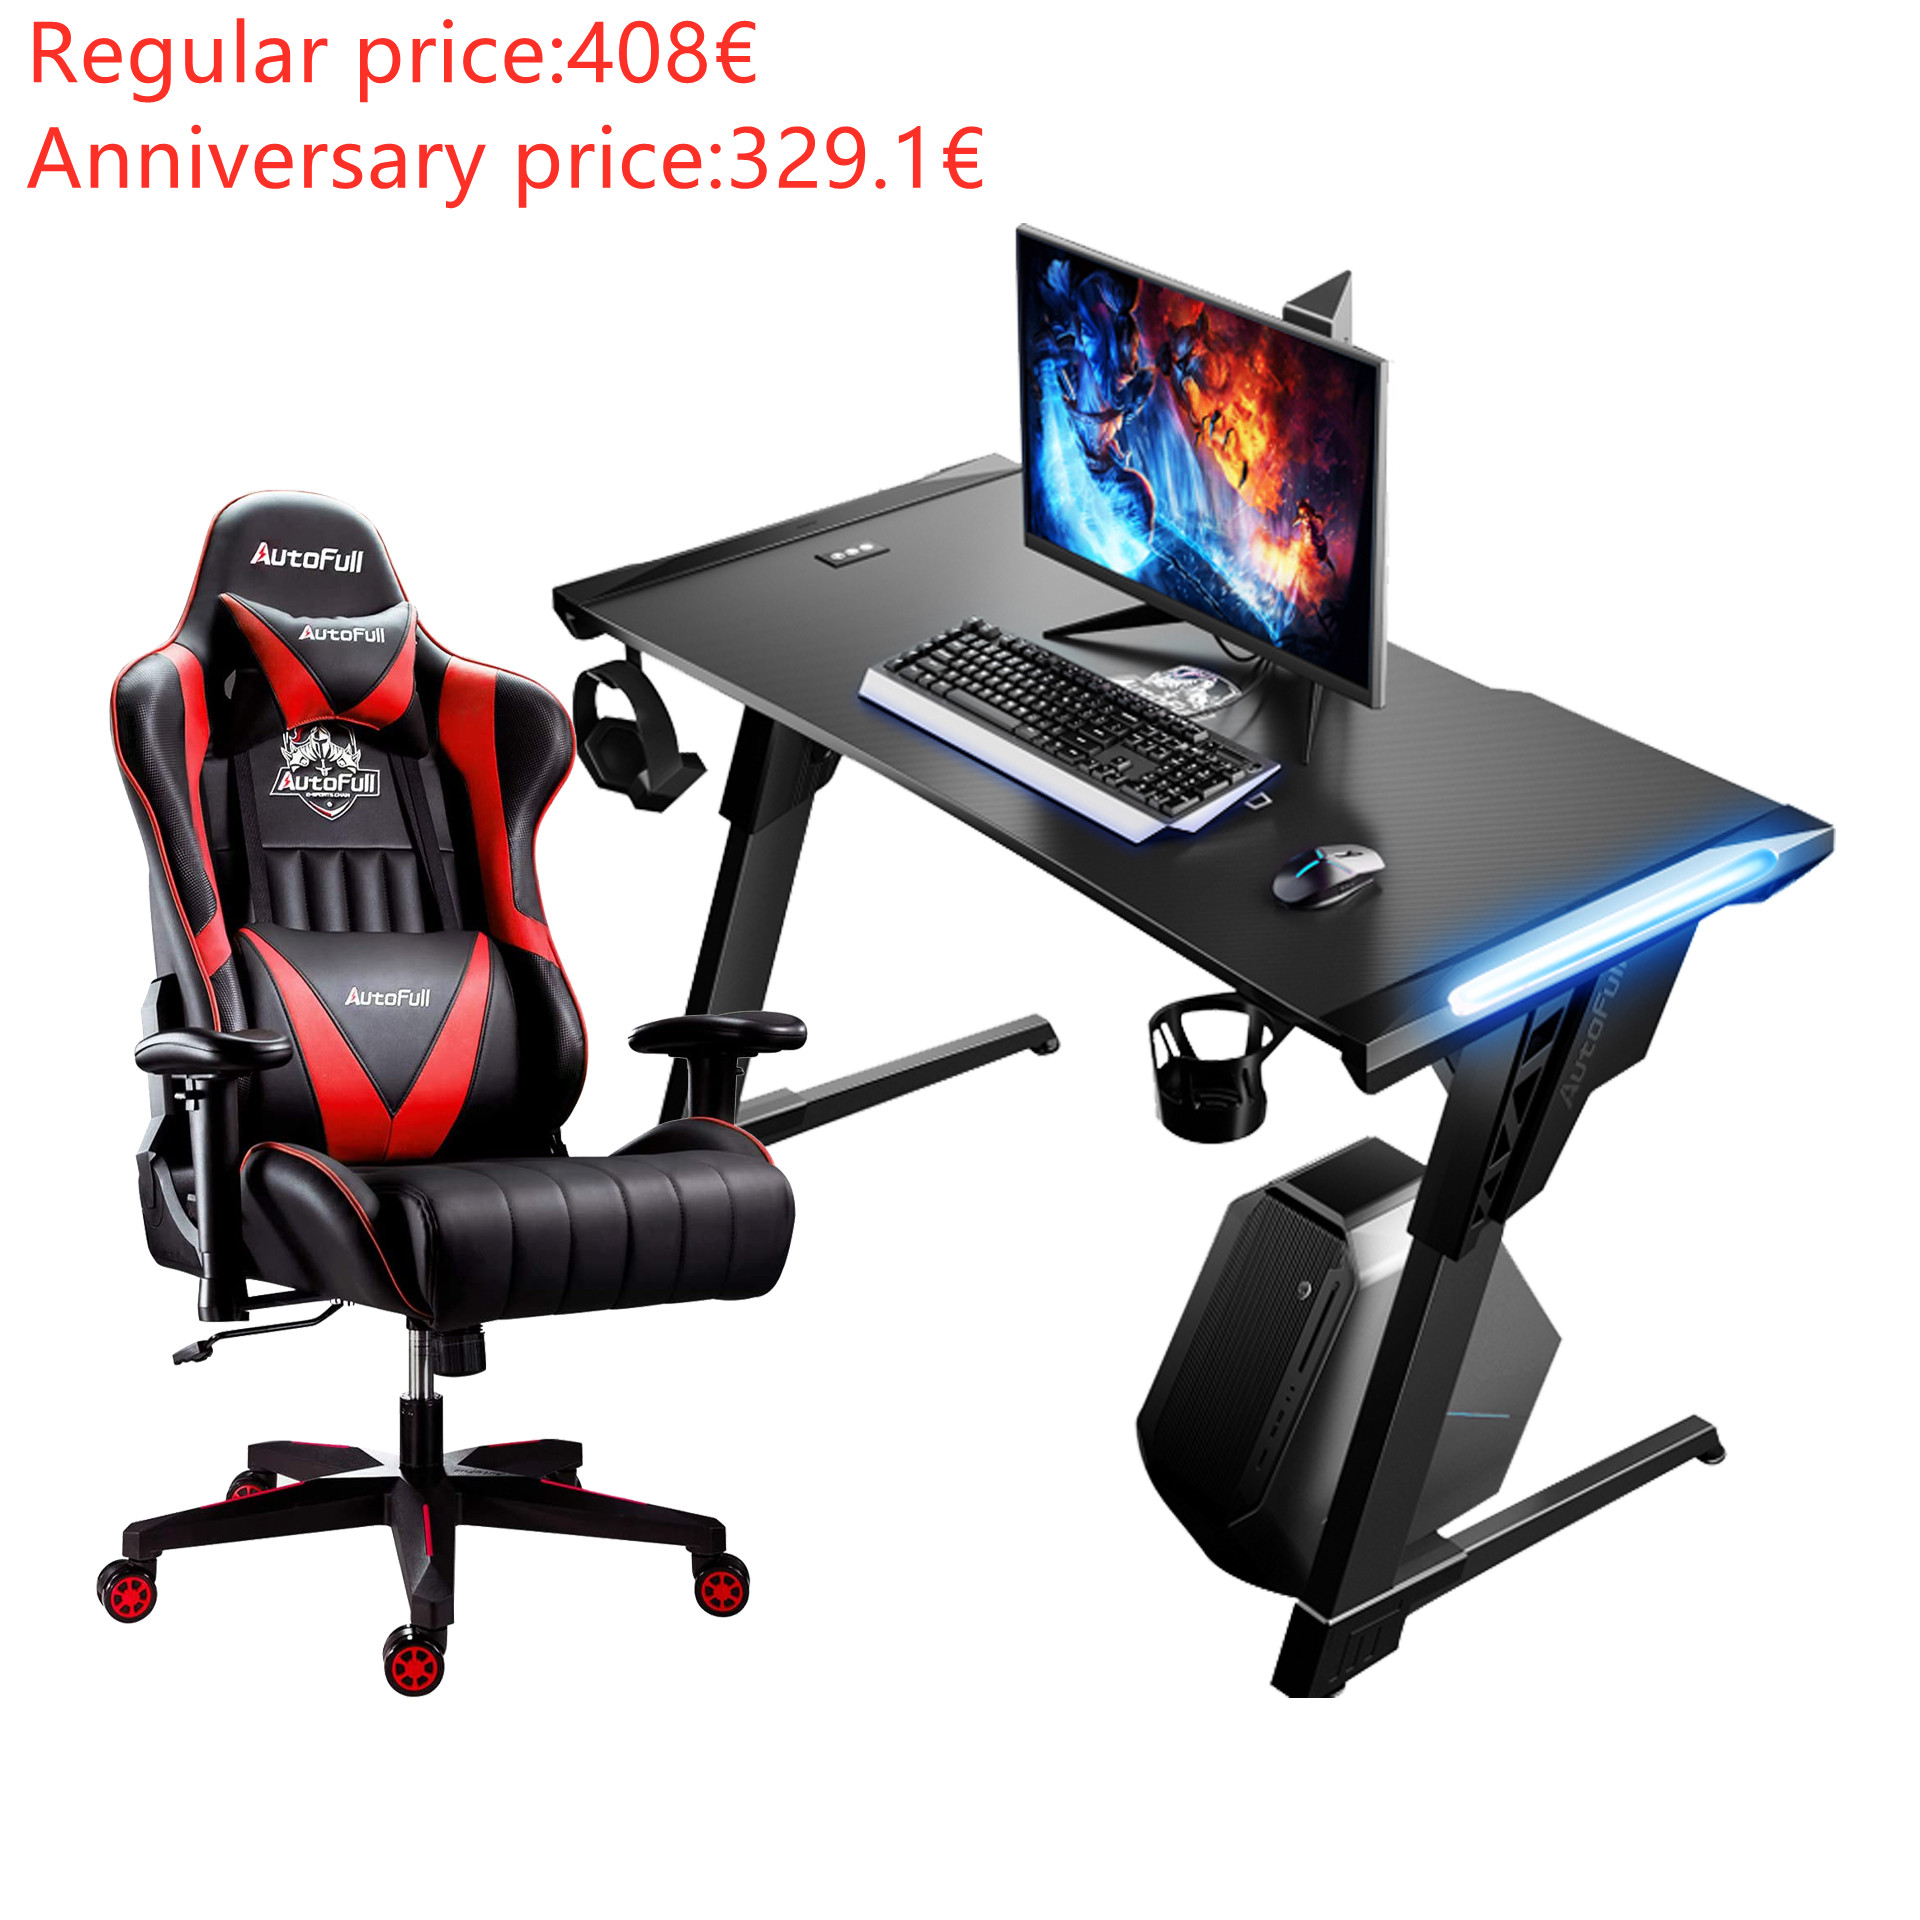 Autofull AF070DPU/BPU/UPU+AFDJZ004B Gaming Chair and Desk Combo